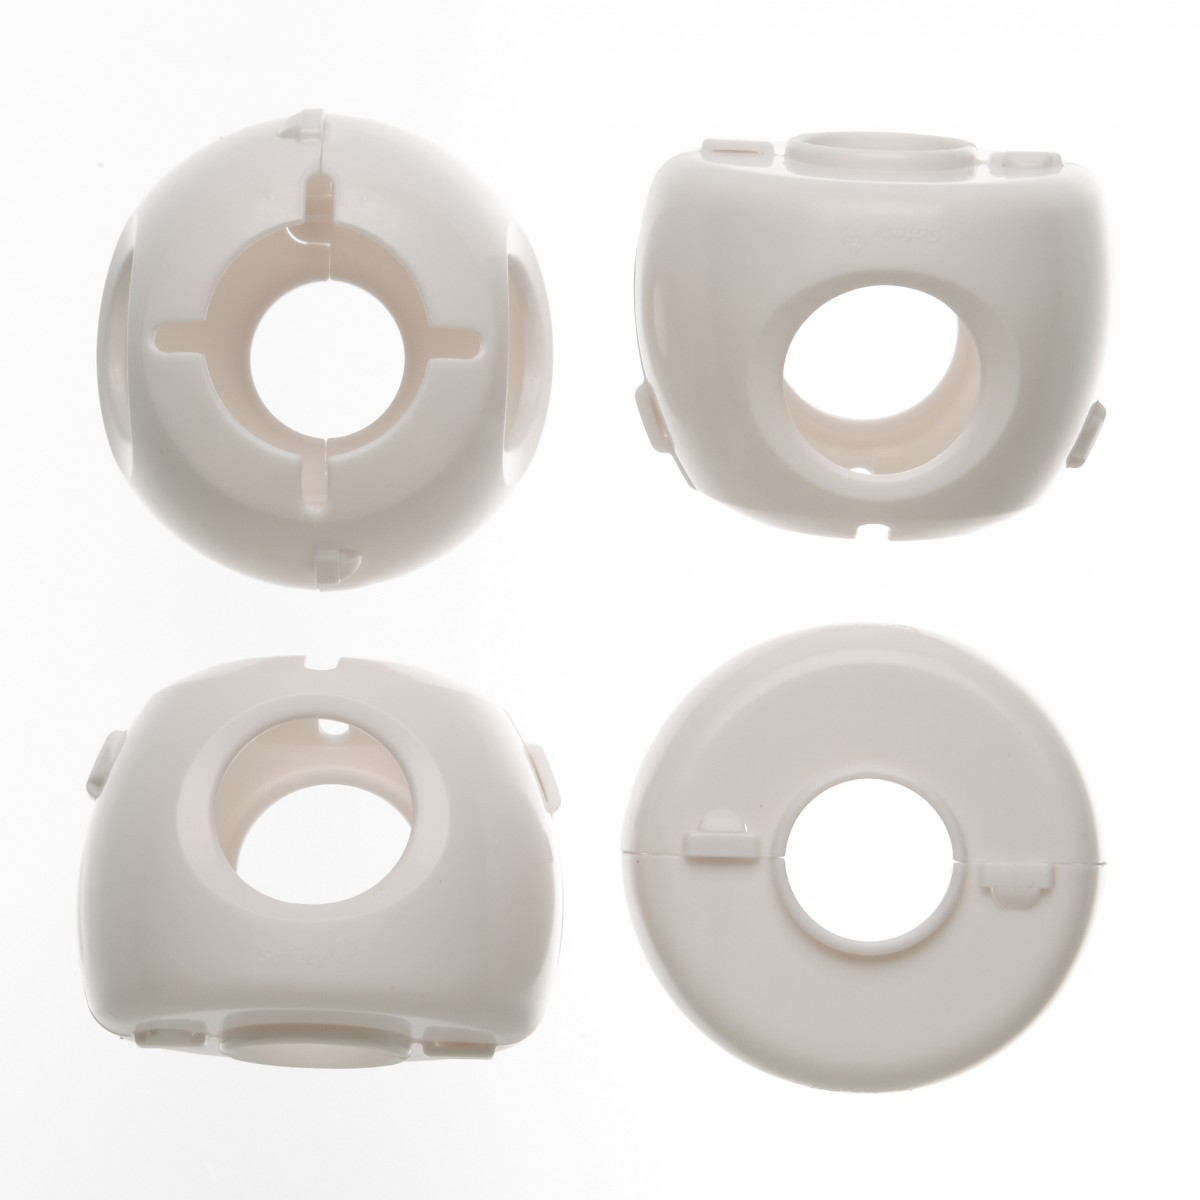 Safety 1st 48394 Grip /'n Twist Door Knob Covers White FREE SHIPPING